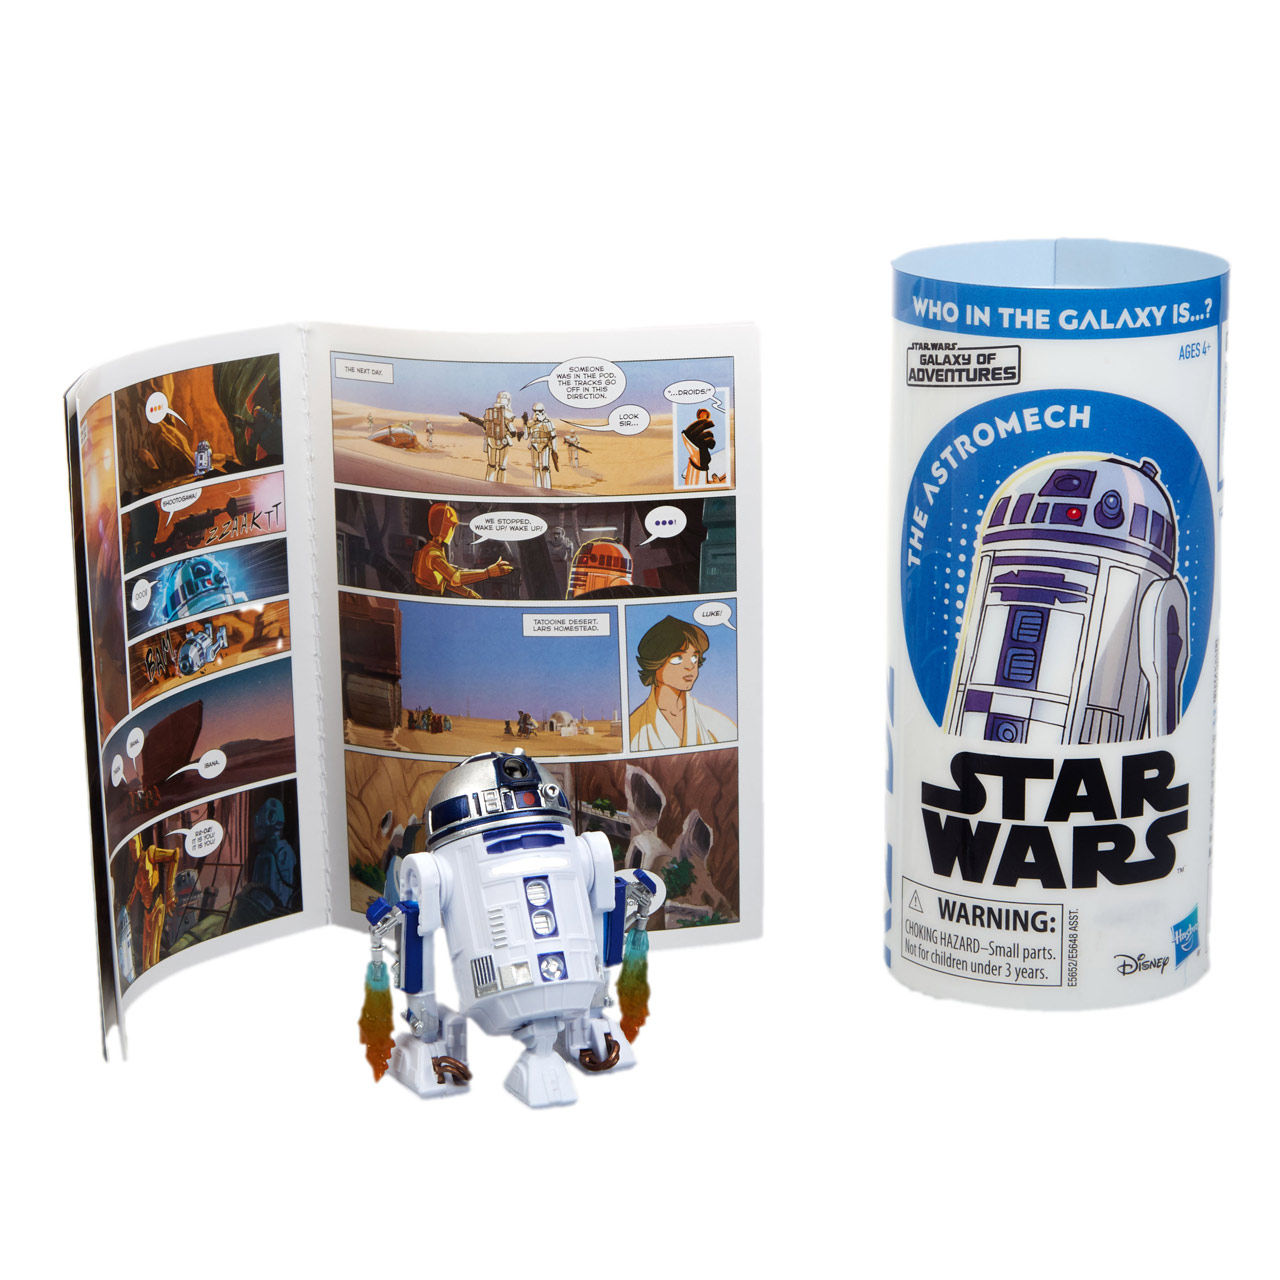 Star Wars Galaxy of Adventures: R2-D2